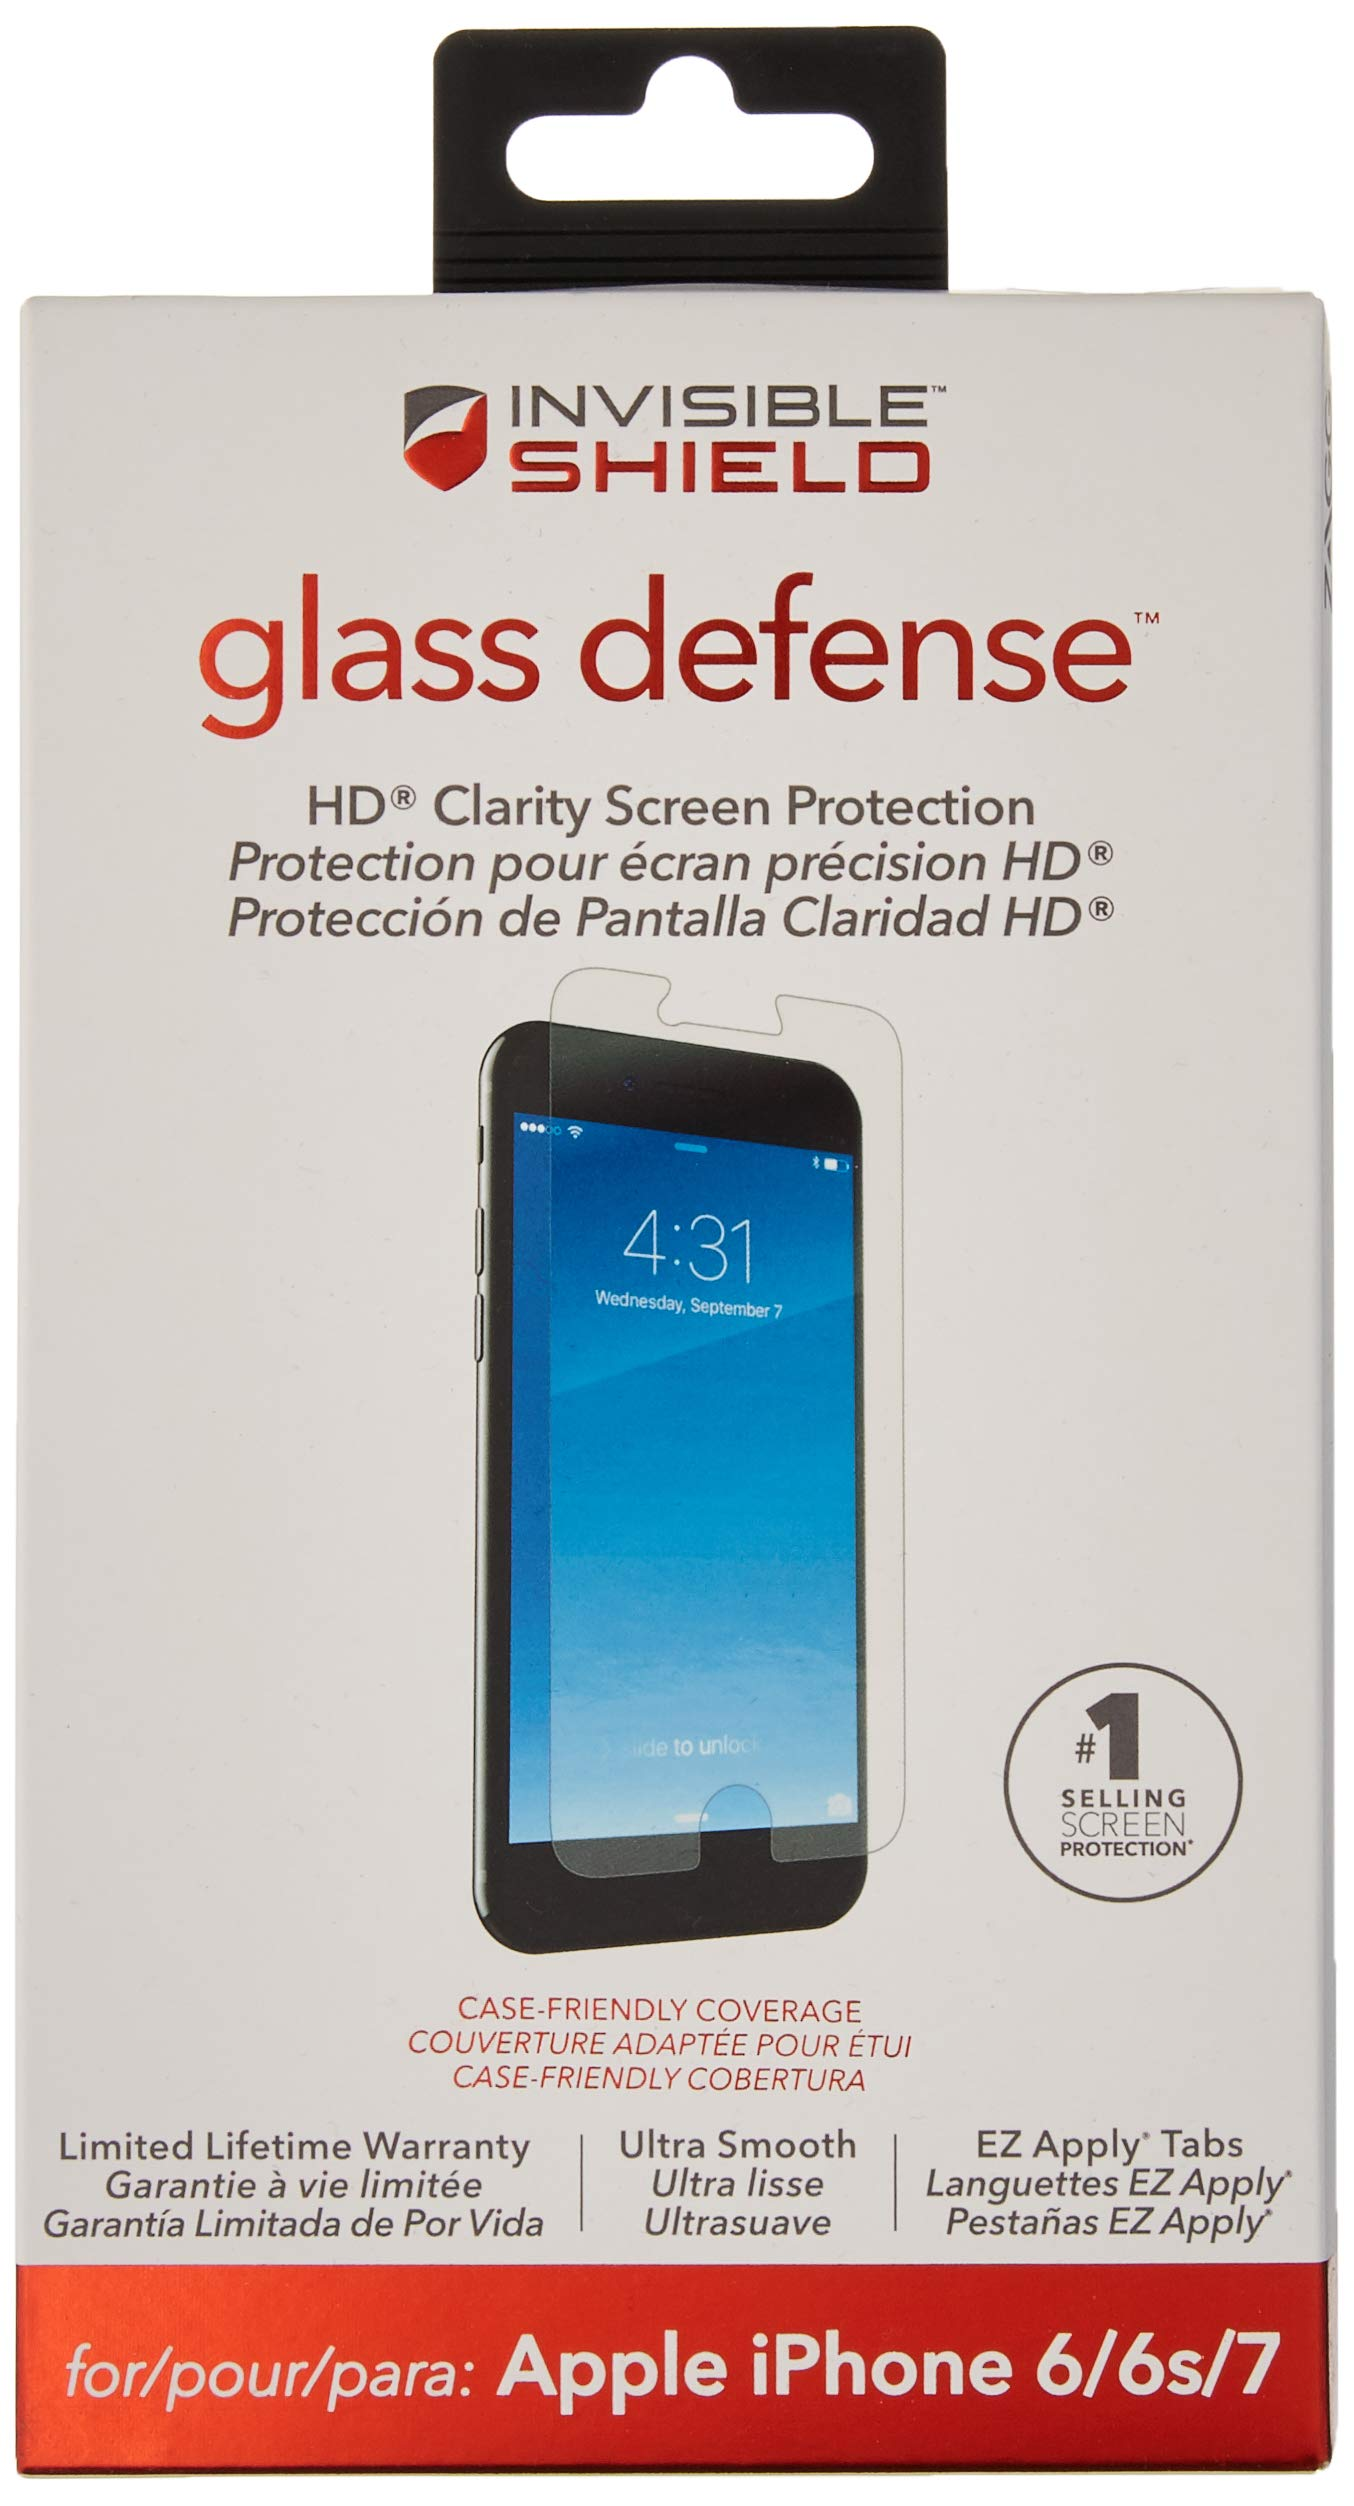 ZAGG InvisibleShield Glass Defense – Screen Protector for Apple iPhone 7, iPhone 6s, iPhone 6 by ZAGG (Image #3)